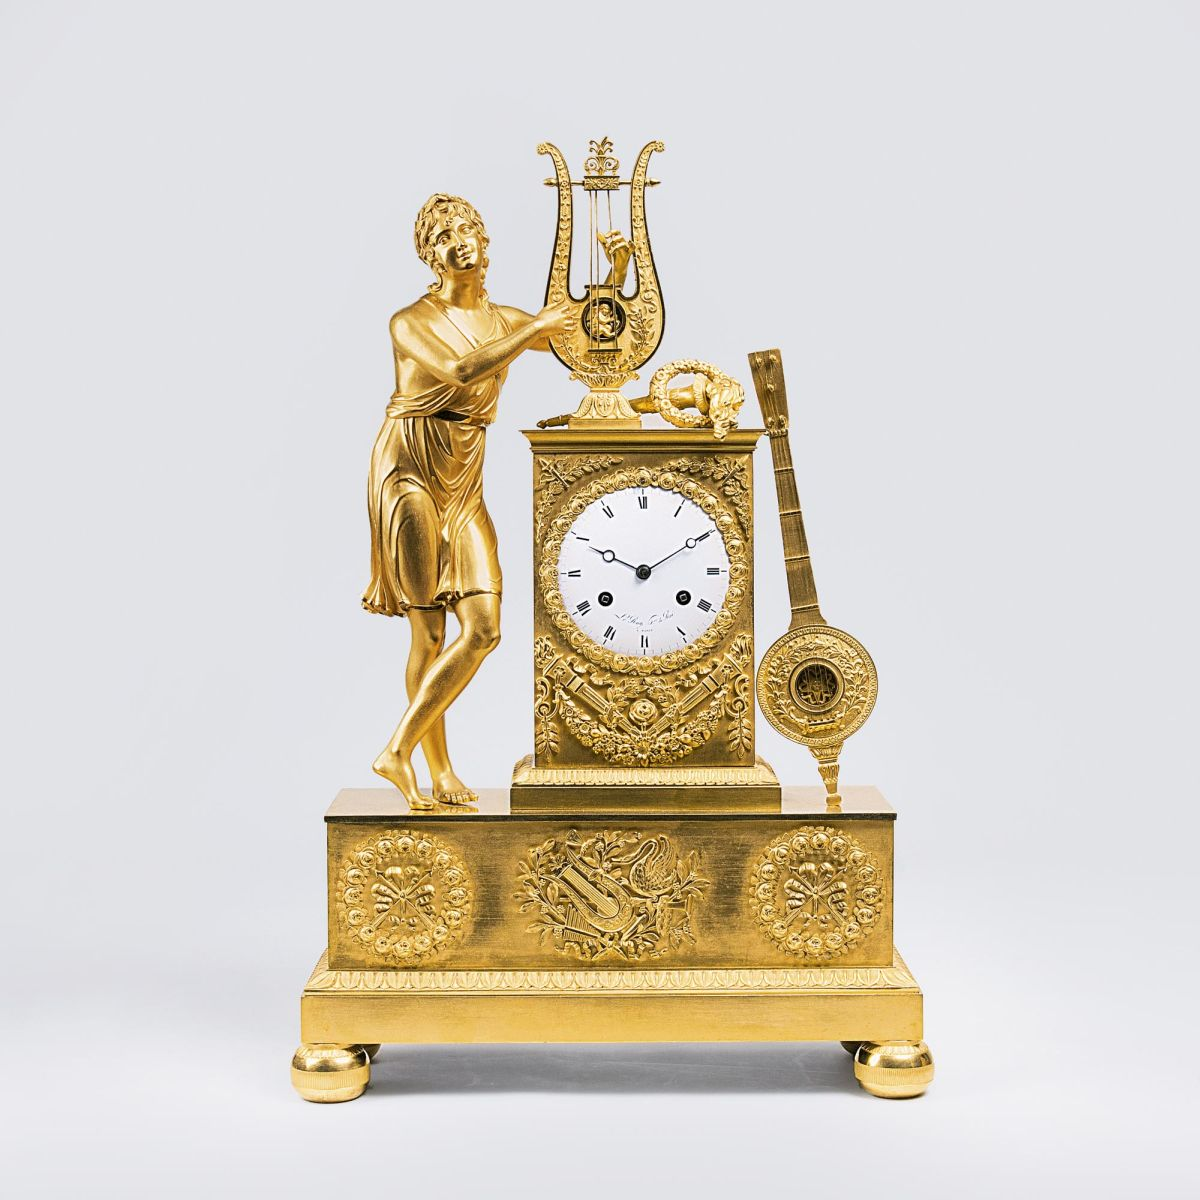 An Empire Pendule 'Orpheus singing of Love'